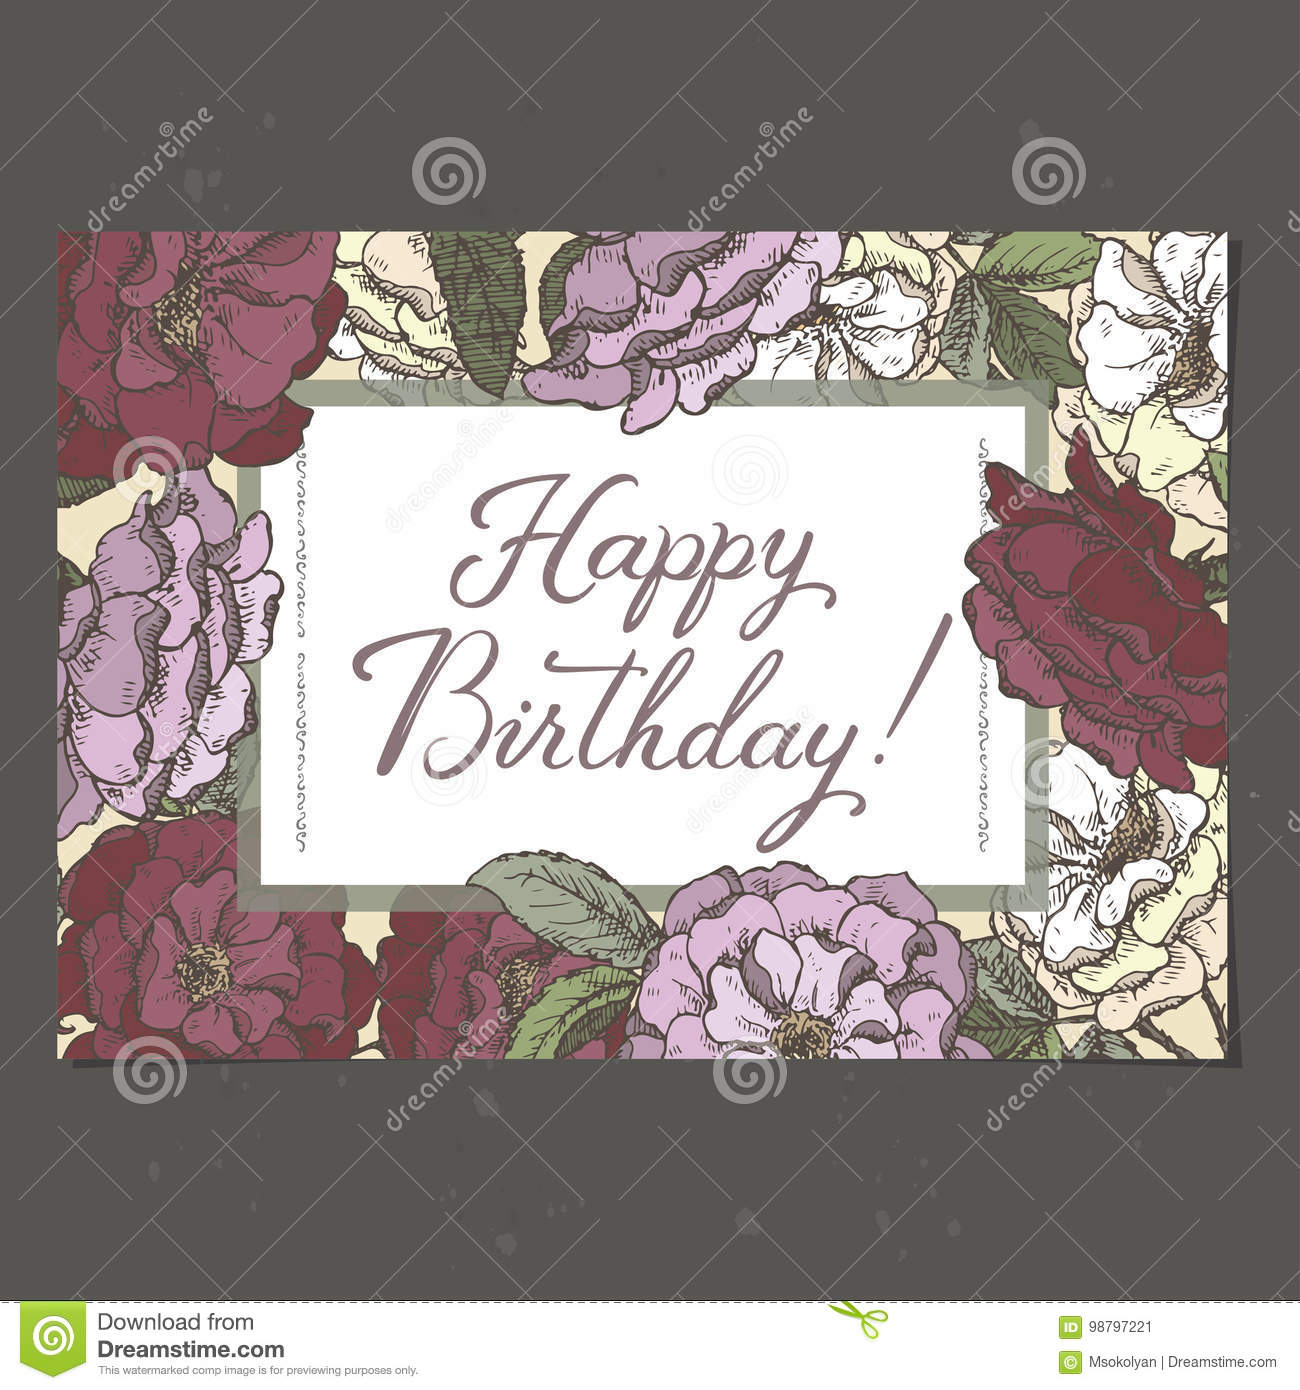 Landscape A4 Format Romantic Birthday Card Template With Calligraphy And Roses Sketch